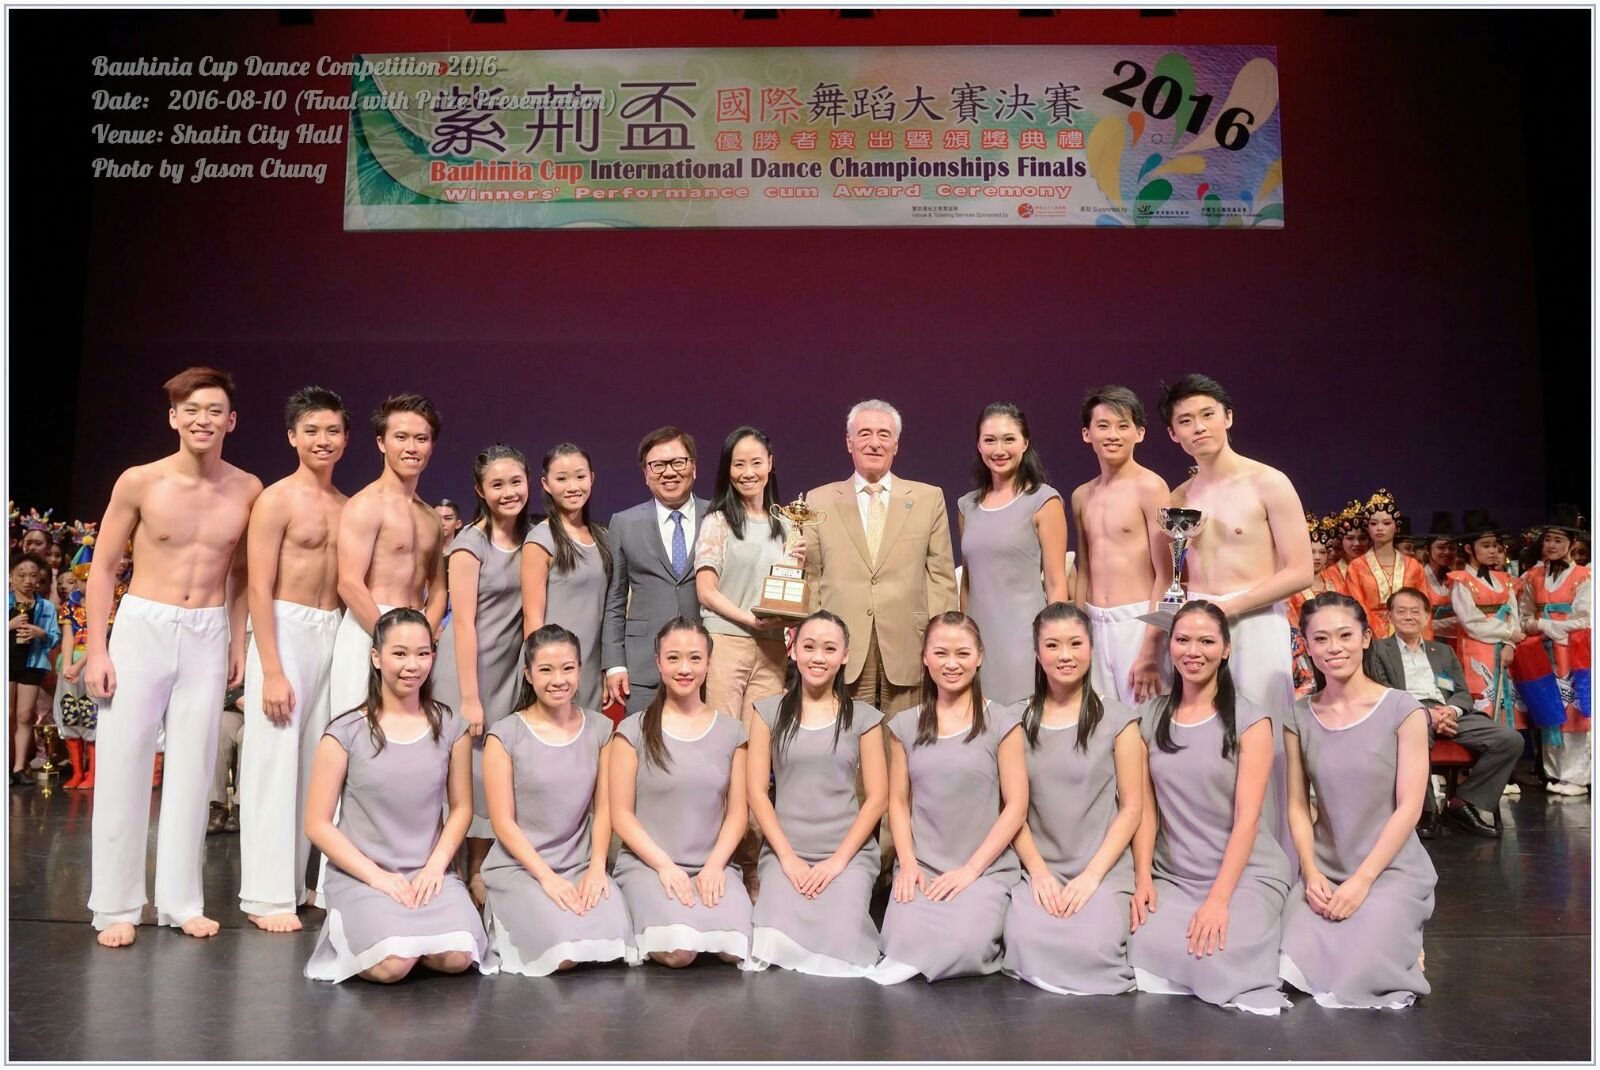 Bauhinia Cup - Overall Championship - Alan and Becky Dance Company